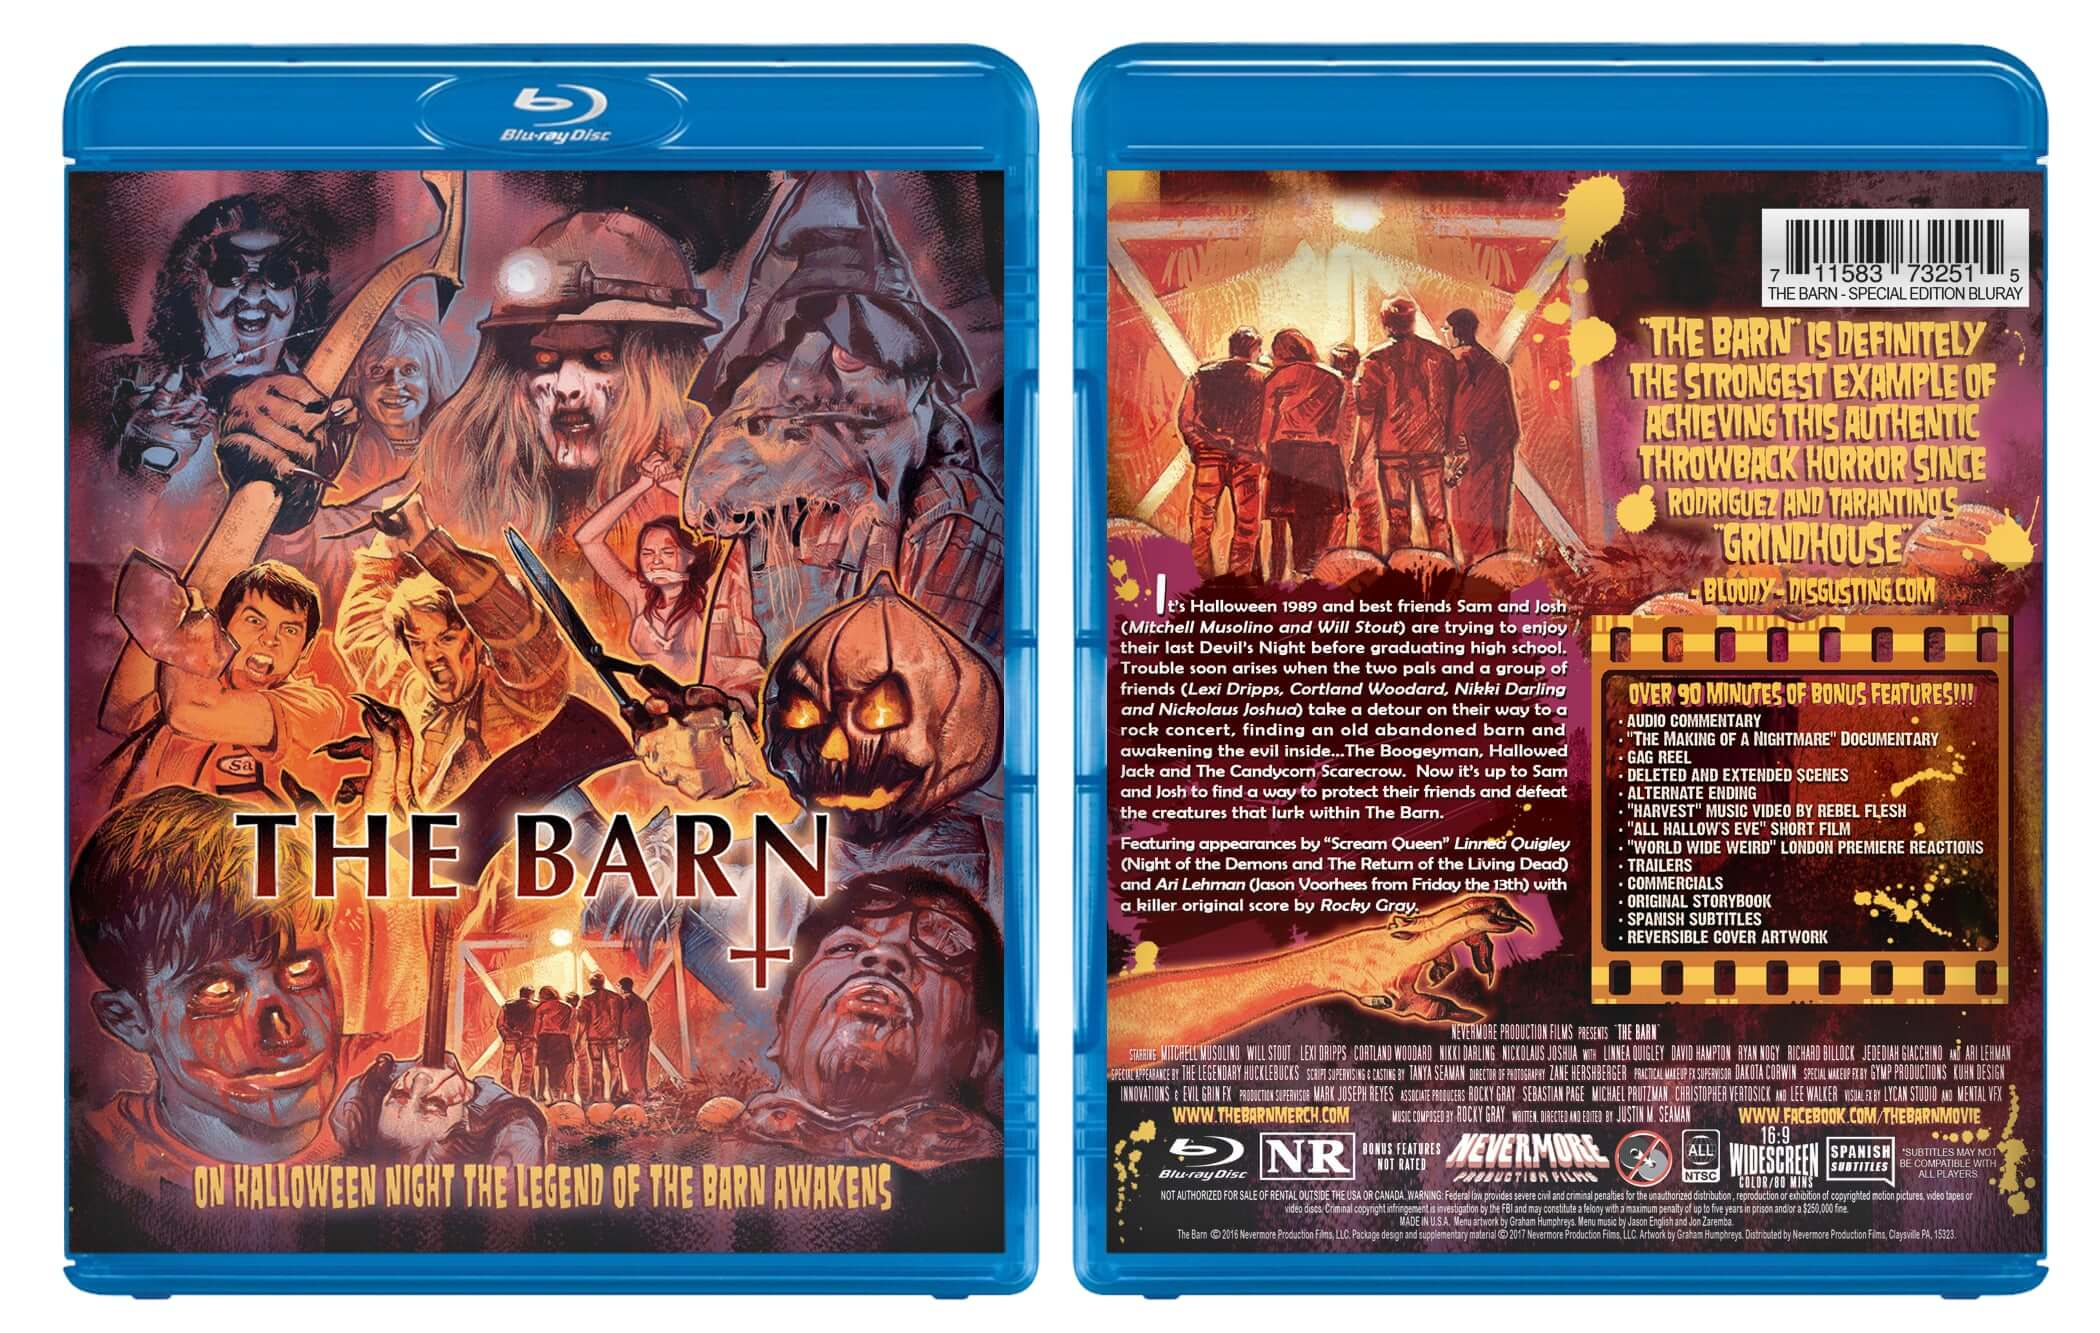 bluray pic Graham Humphreys bluray case flat 1 - The Barn Opens Its Doors on Blu-ray with Stunning New Artwork by Graham Humphreys